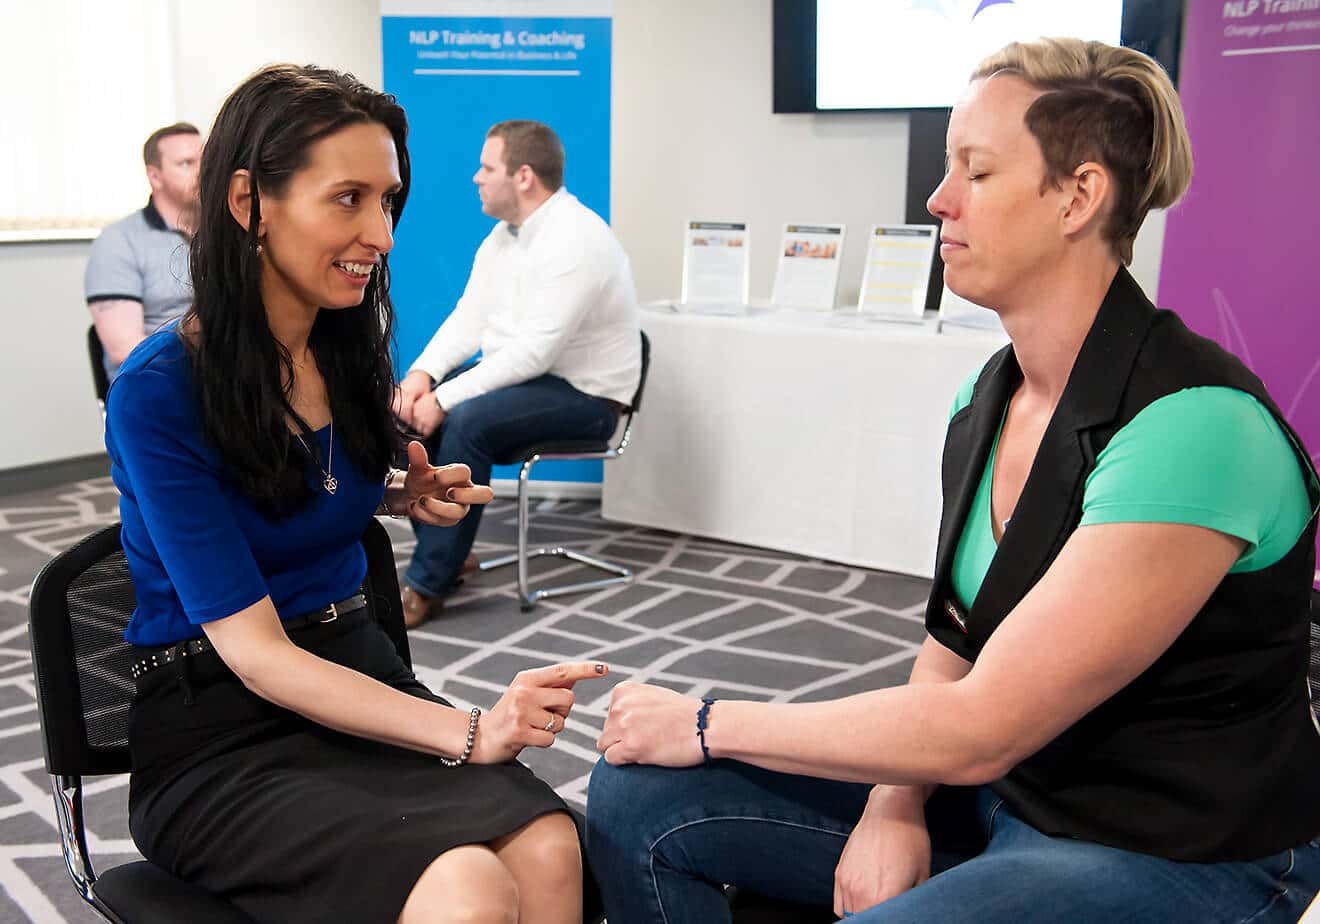 Hypnosis Courses - London & Cardiff | Hypnotherapy Training